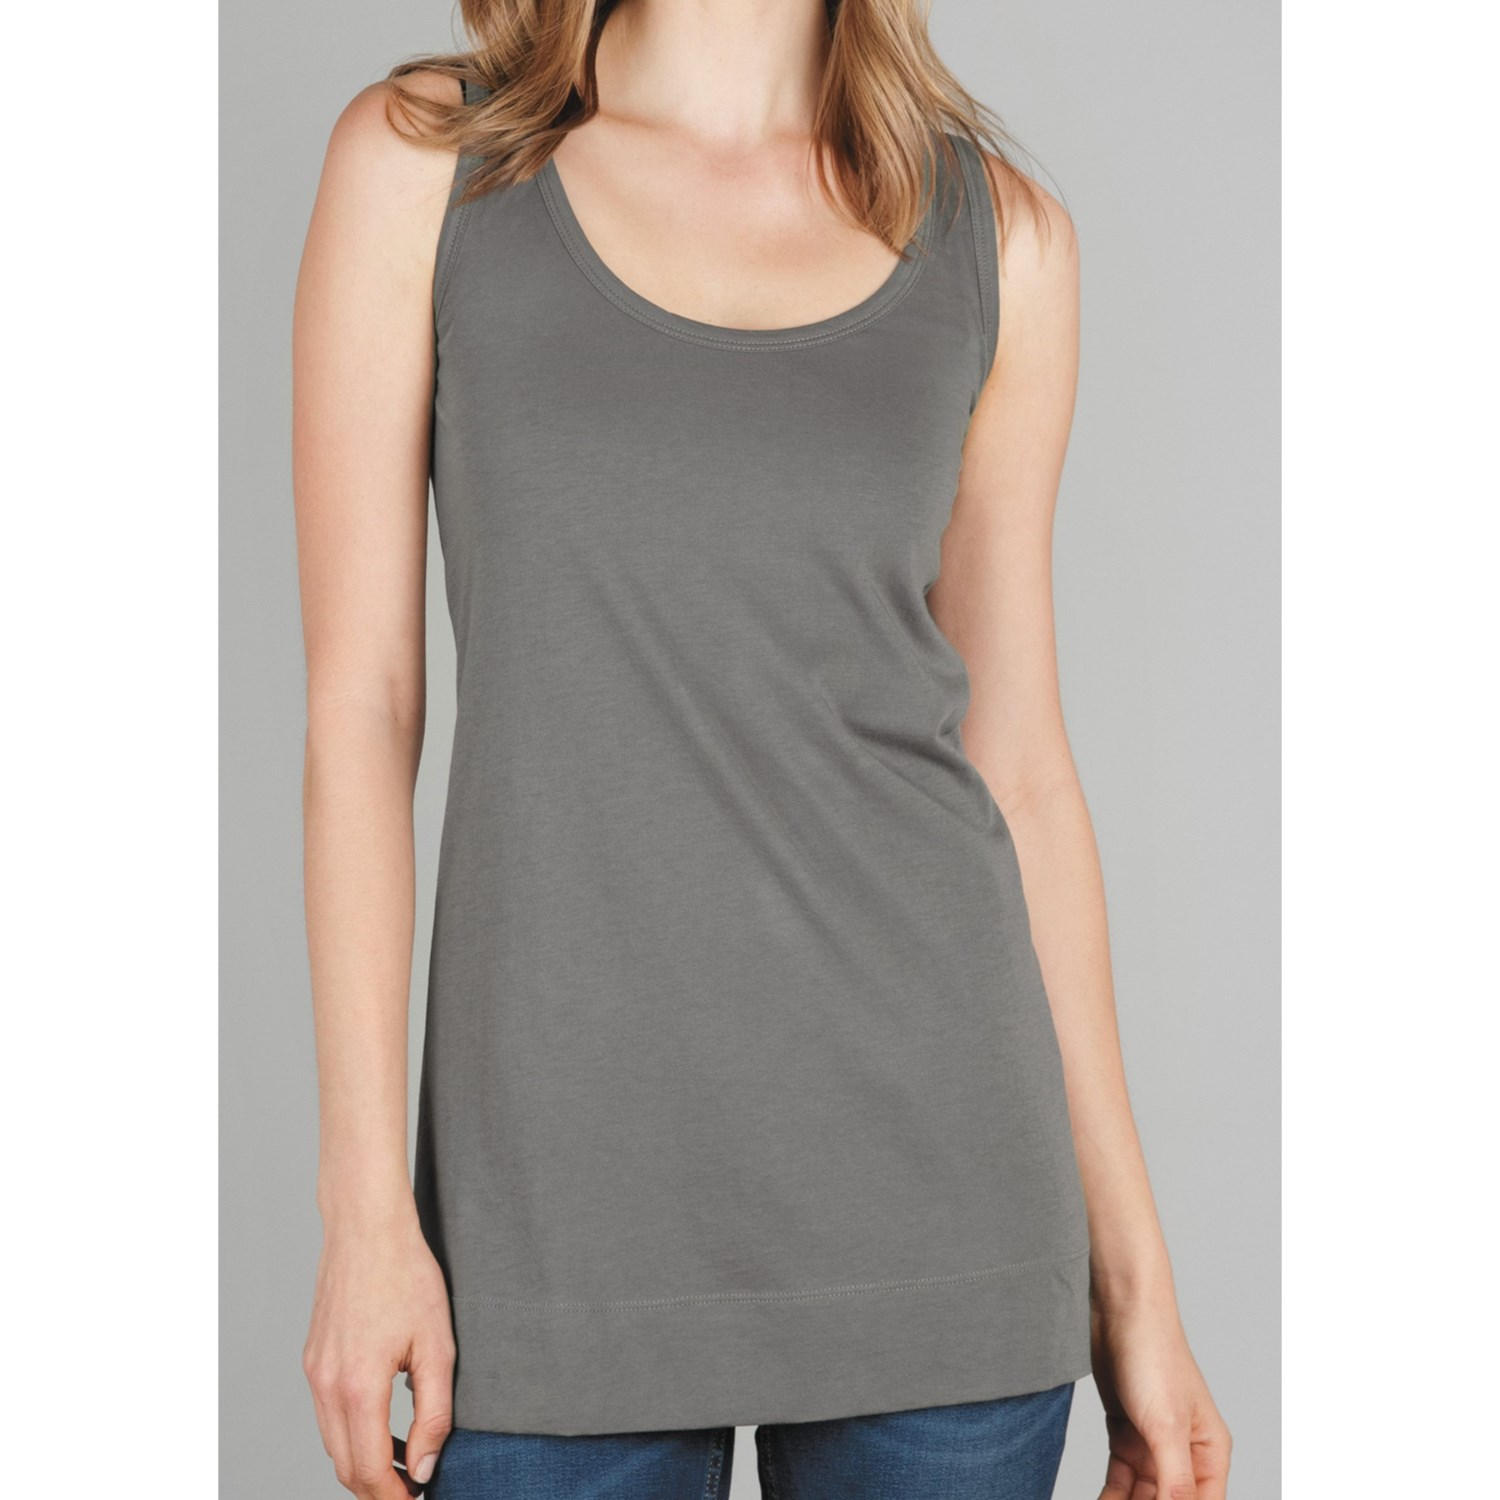 Workout tanks for working it (out) at the gym!